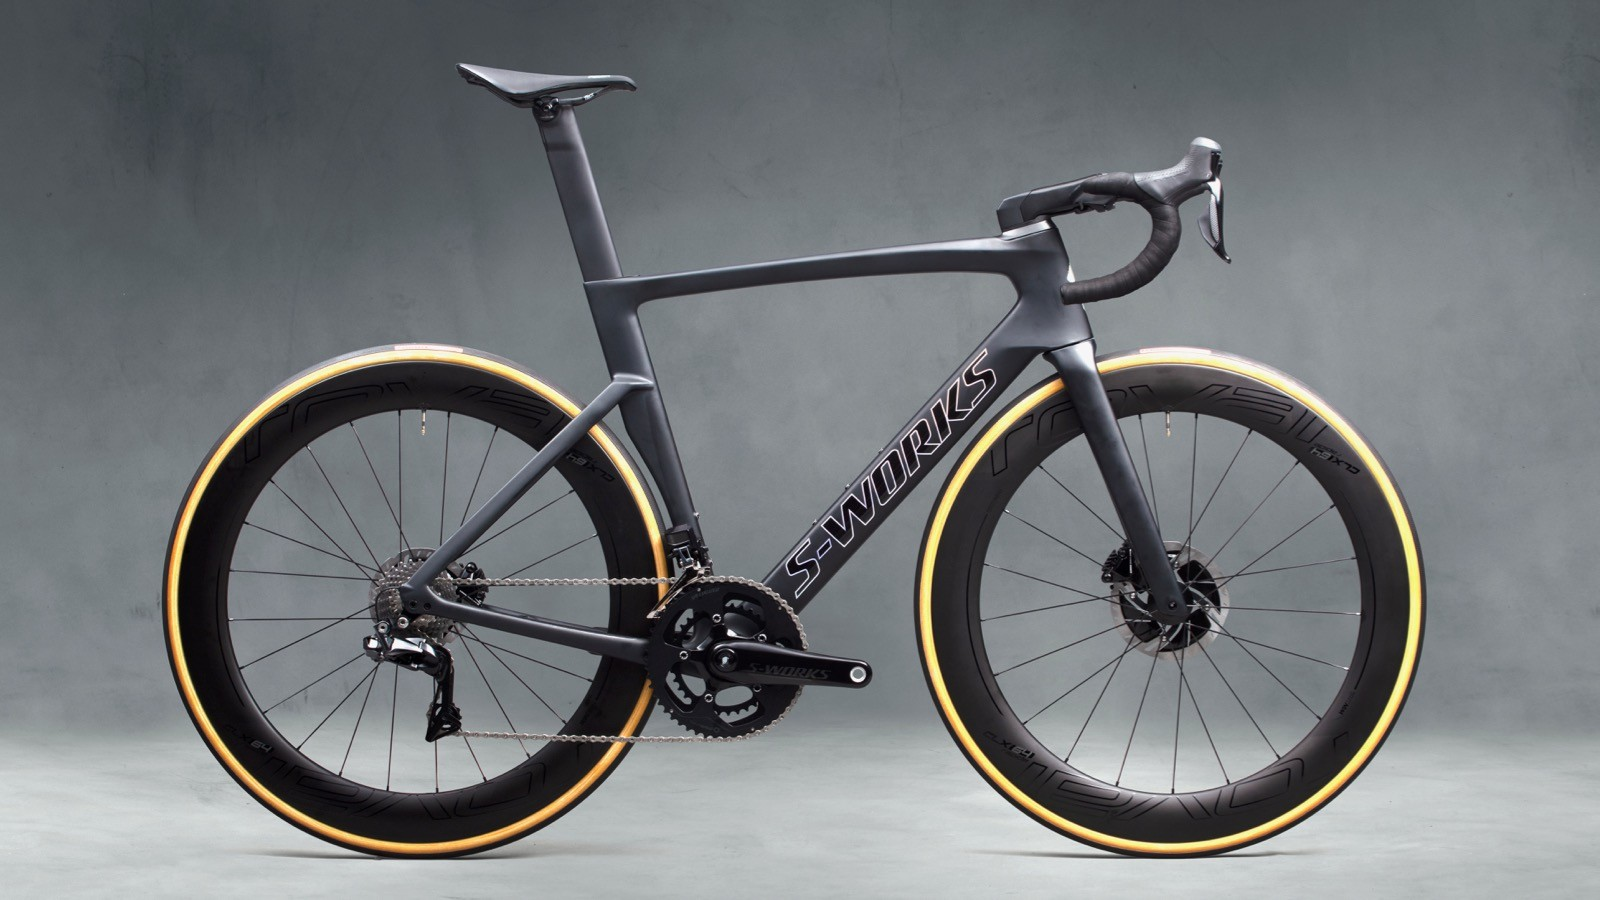 The 2019 Specialized S-Works Venge